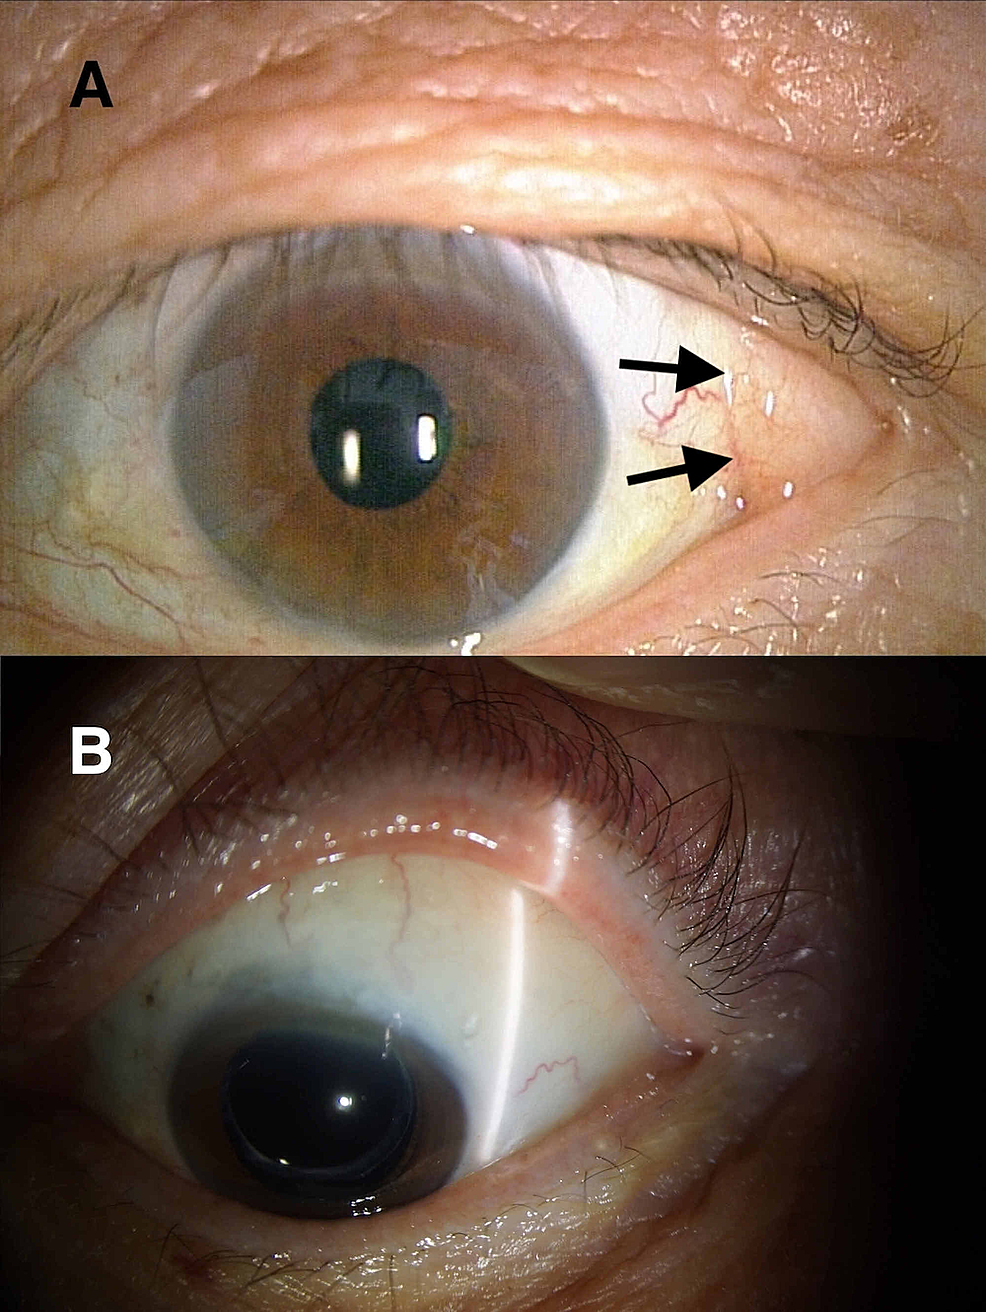 Prolapsed-subconjunctival-fat-in-the-superotemporal-quadrant-of-the-left-eye-of-a-man.